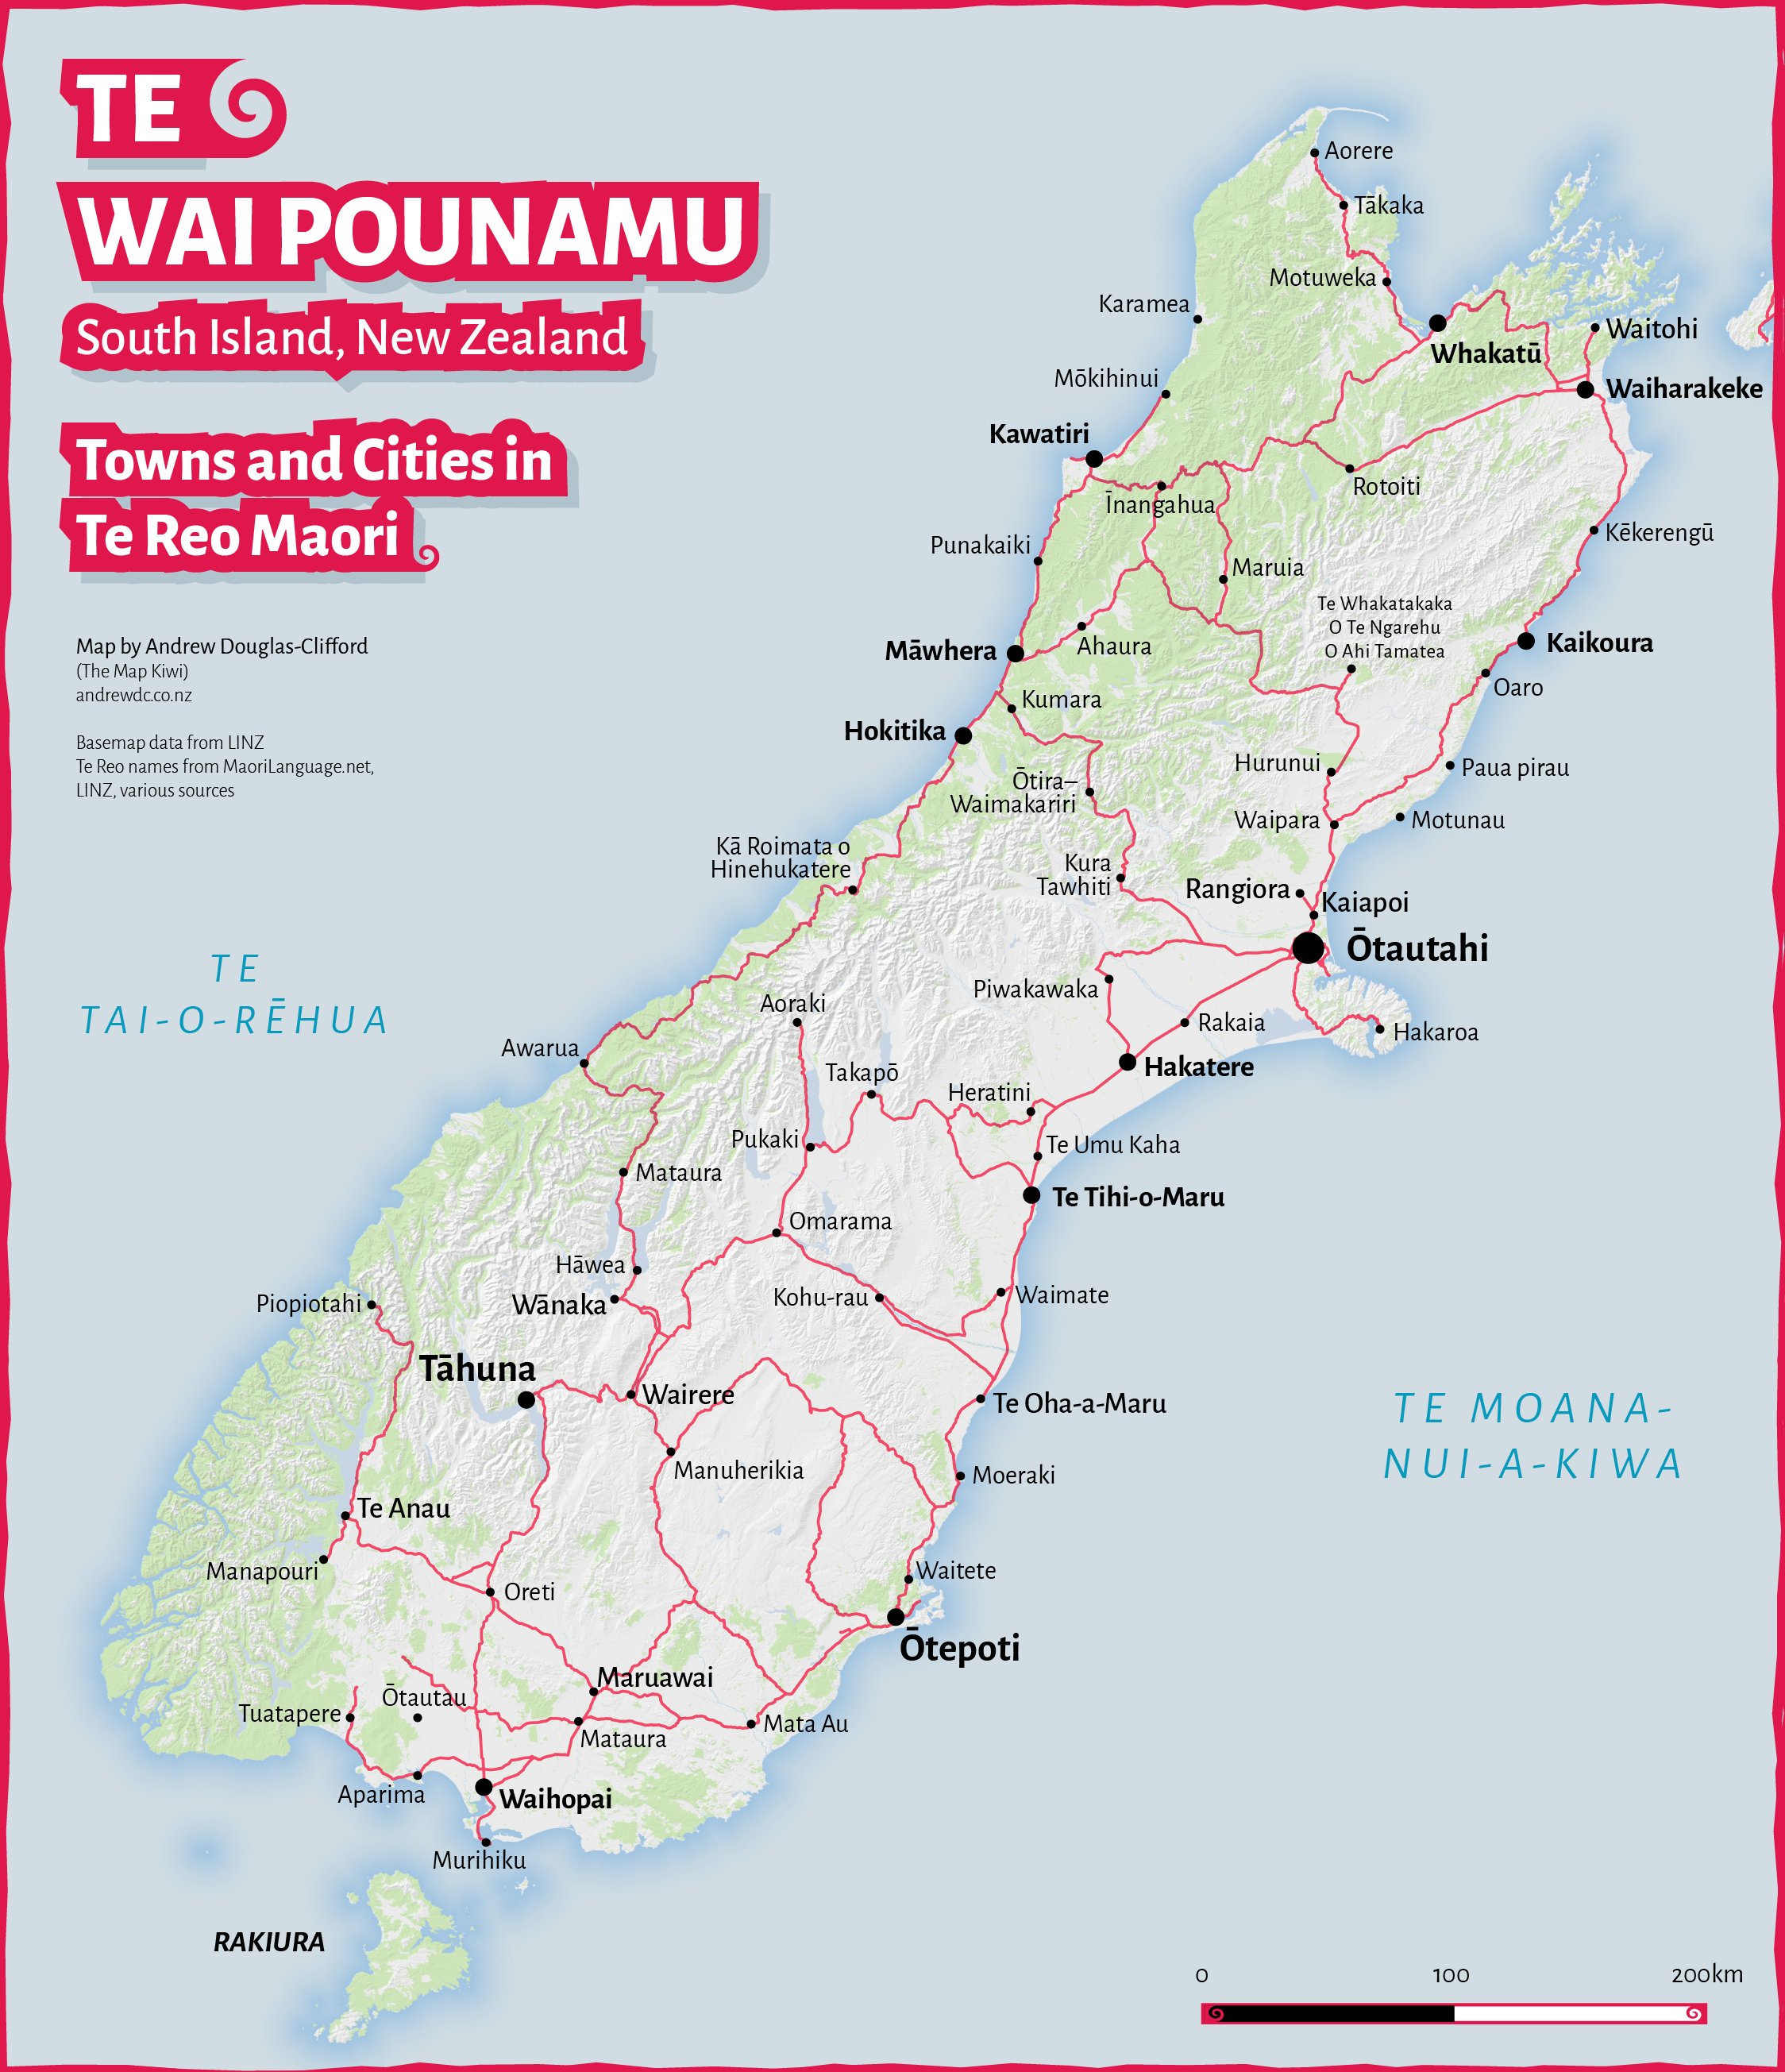 South Island Map Of New Zealand.Te Wai Pounamu Te Reo Maori Map Of South Island Towns And Cities